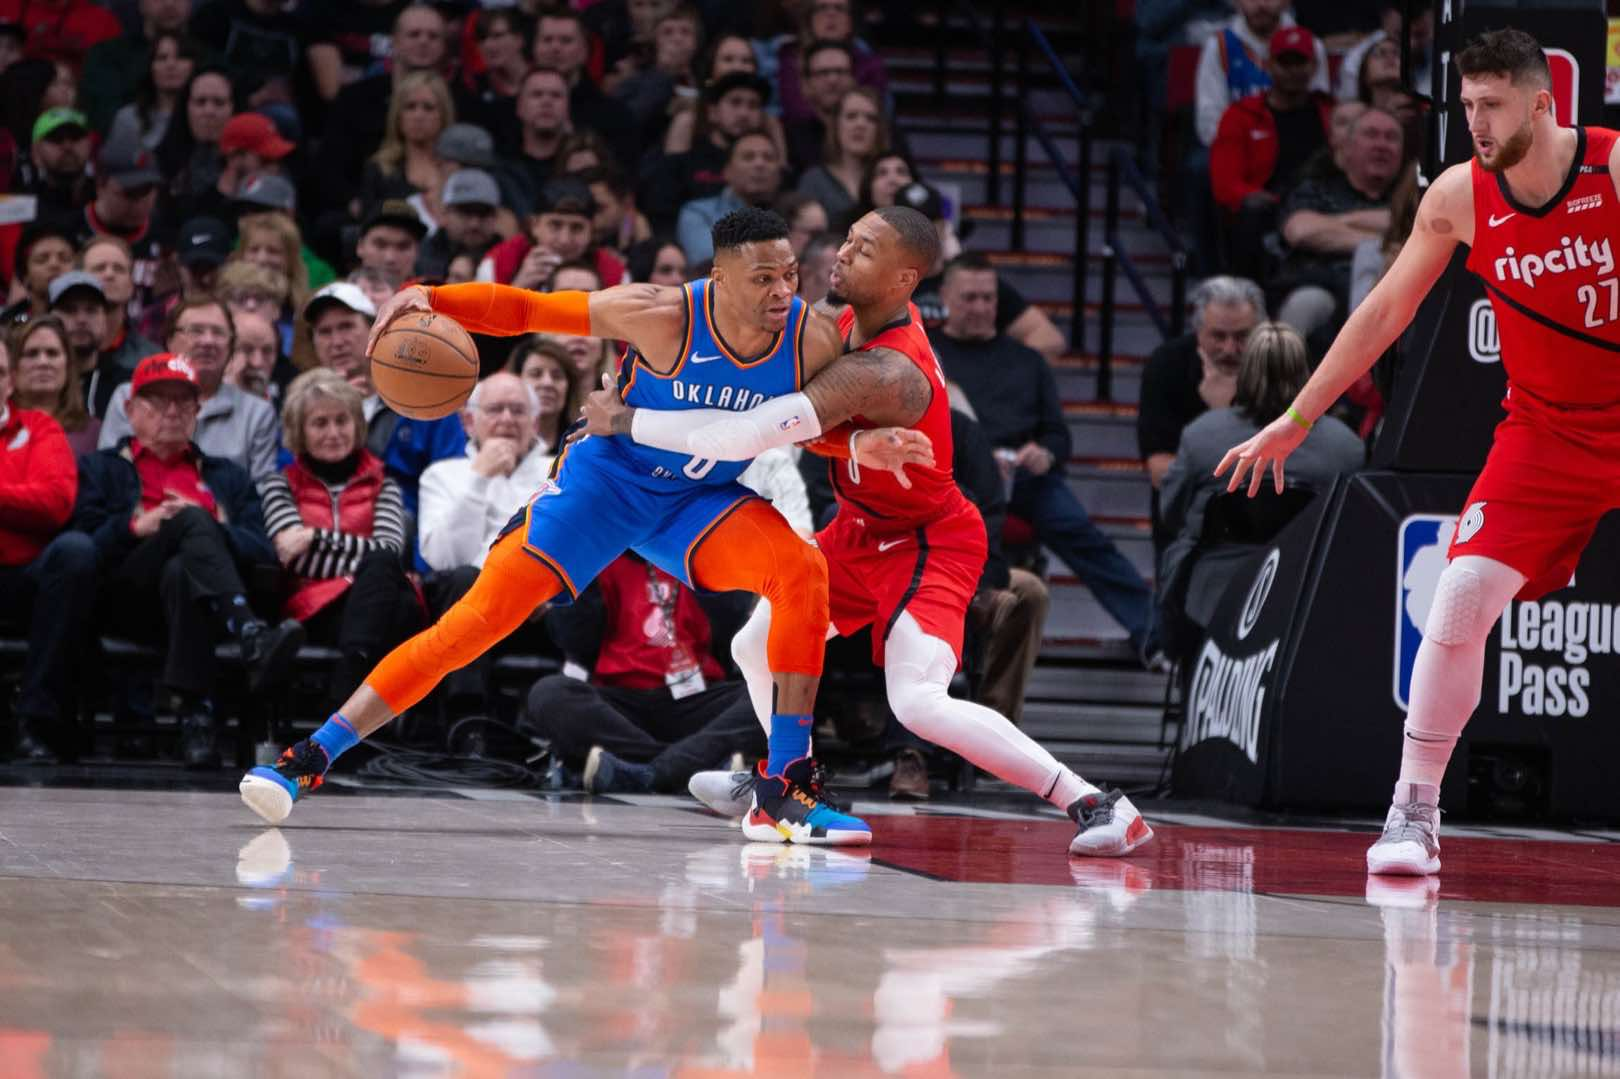 PHOTOS » A look back at Blazers vs. Thunder | Portland ...